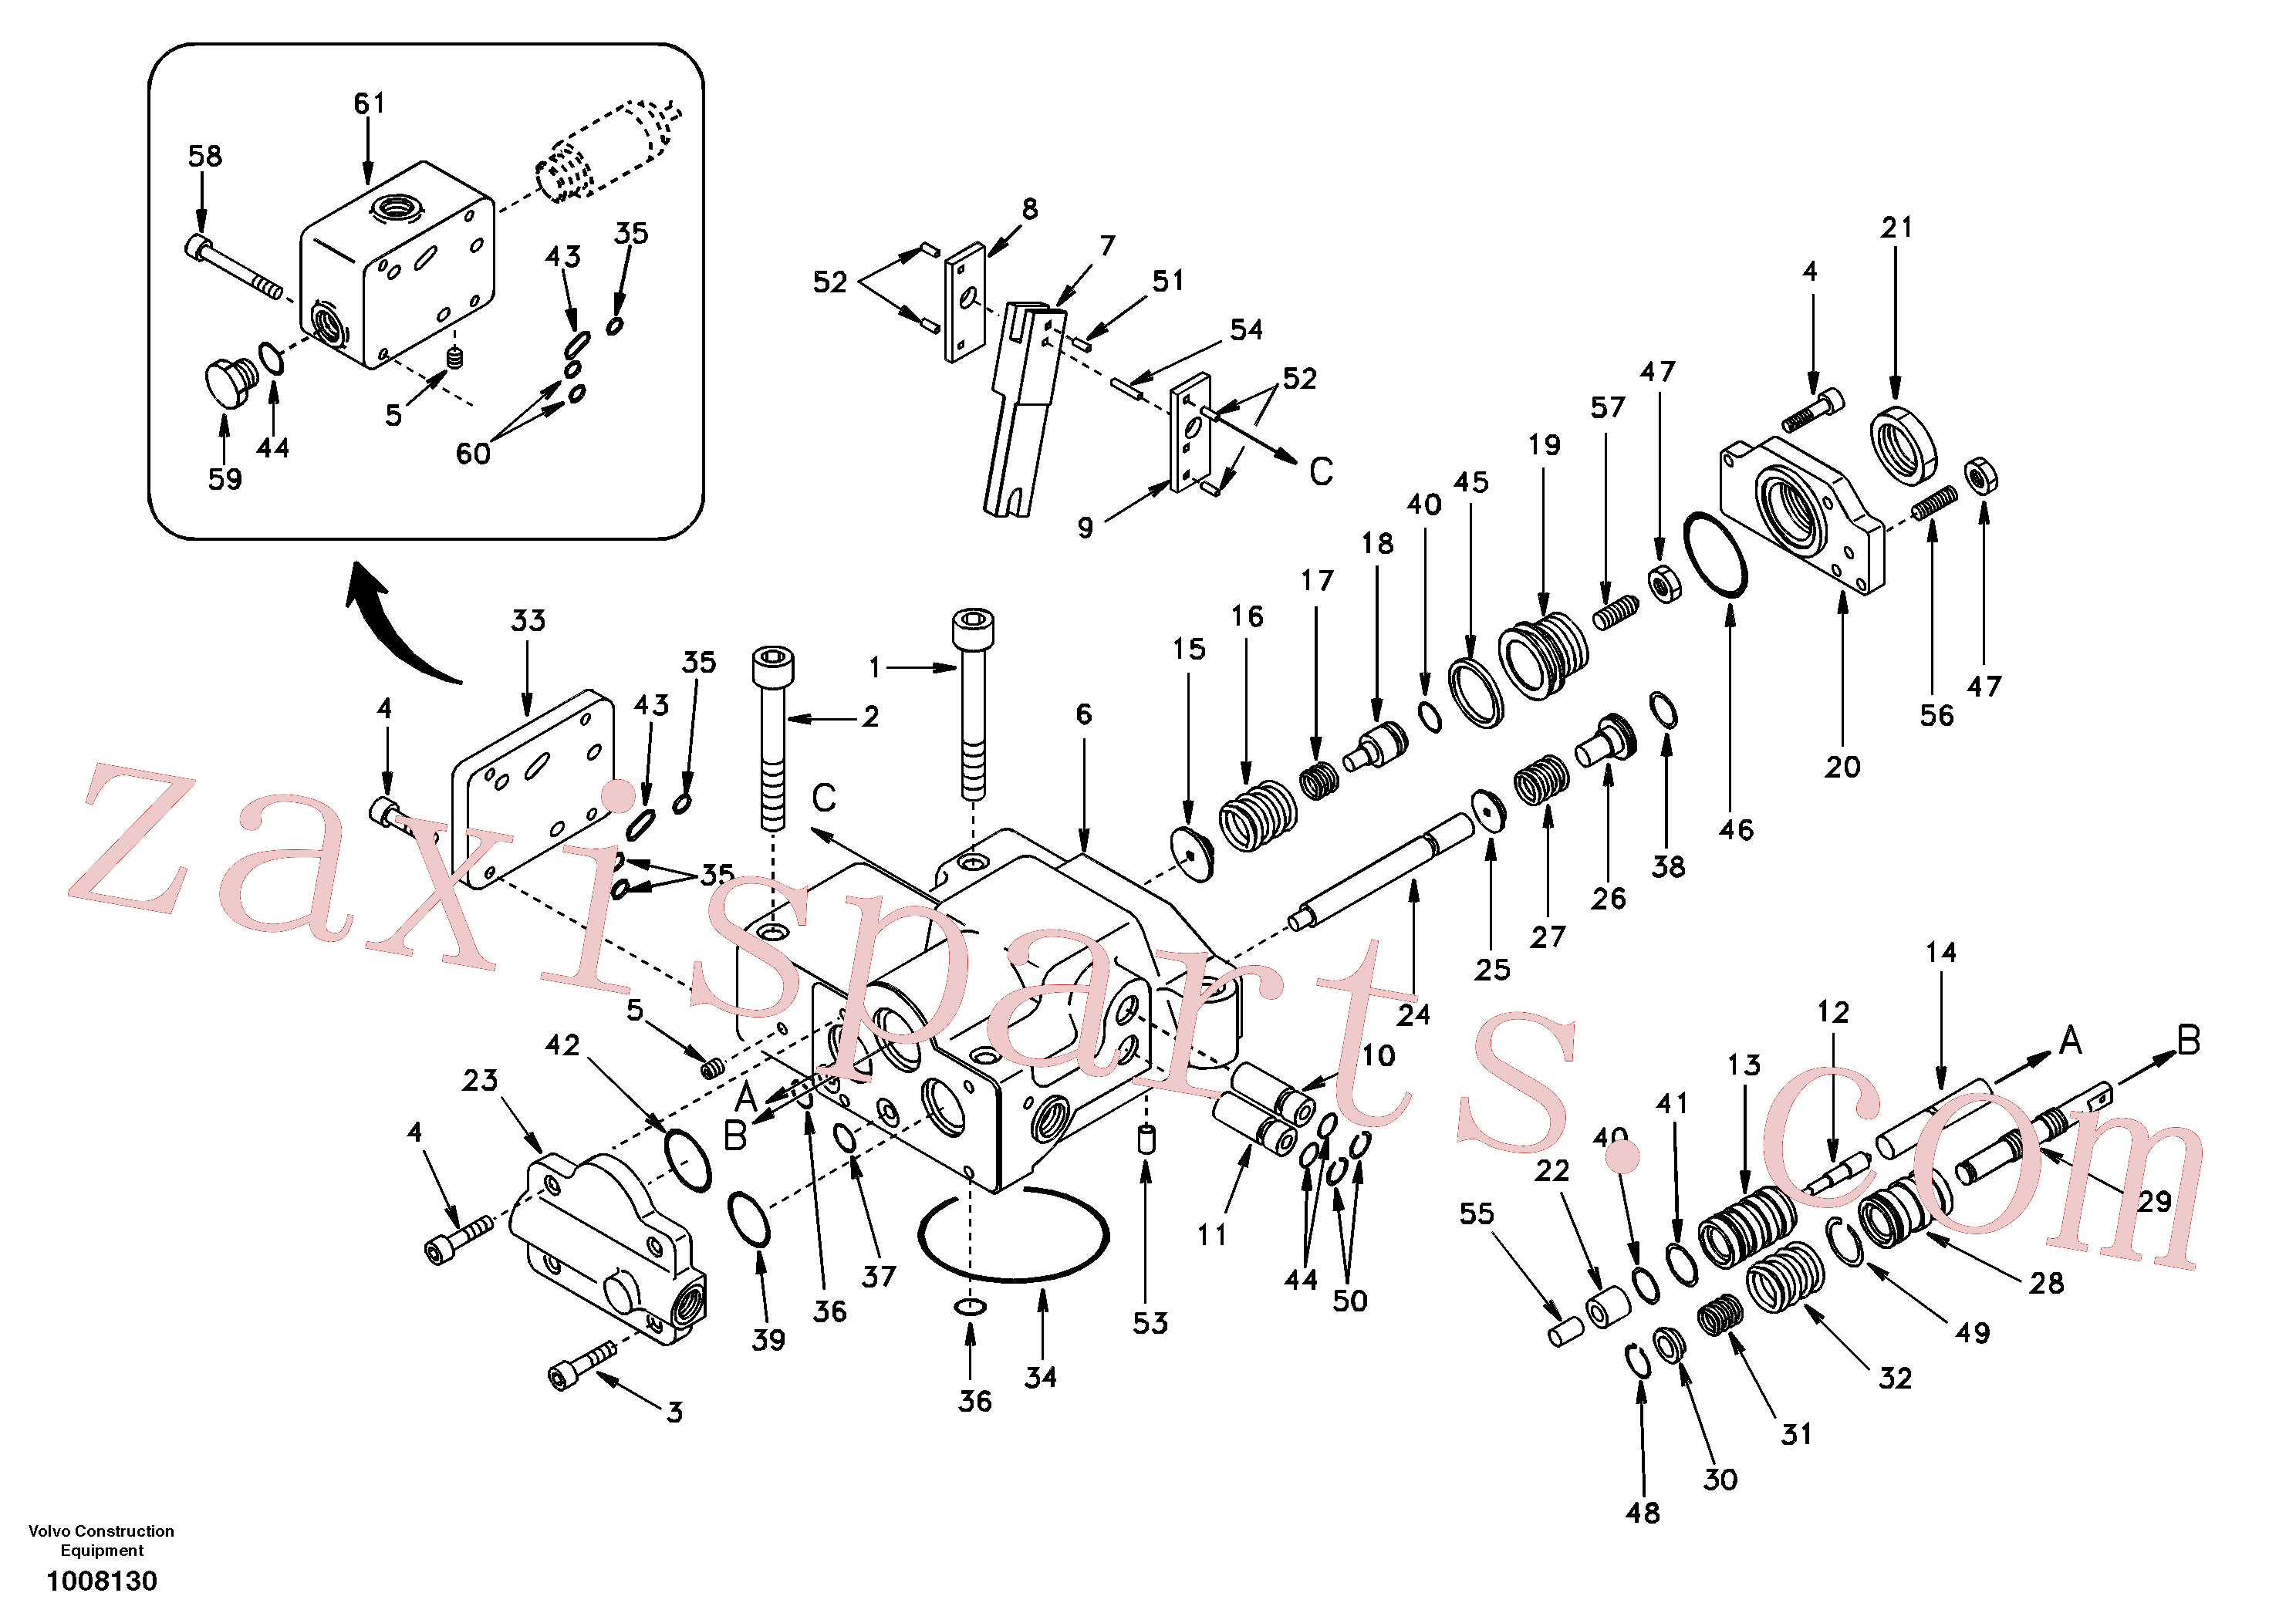 SA14501611 for Volvo Regulator, hydraulic pump(1008130 assembly)